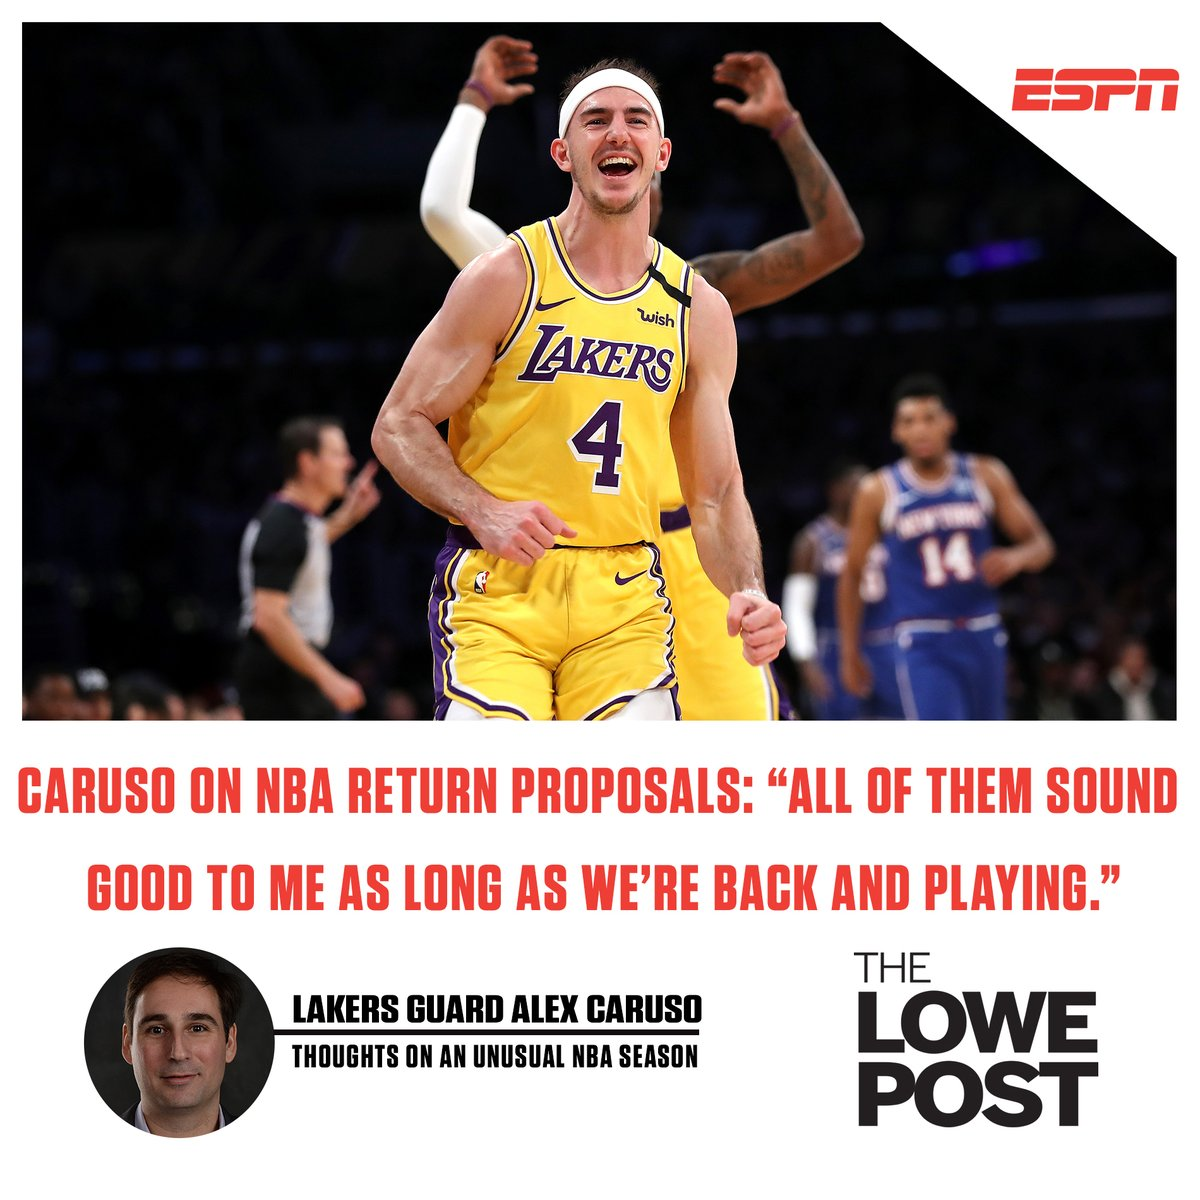 New #LowePost!  @ZachLowe_NBA talks to Lakers guard @ACFresh21 about his unique NBA journey, the NBA's potential return and more!  LISTEN: https://t.co/cSX2YSCYq4 https://t.co/364pHyKwoi